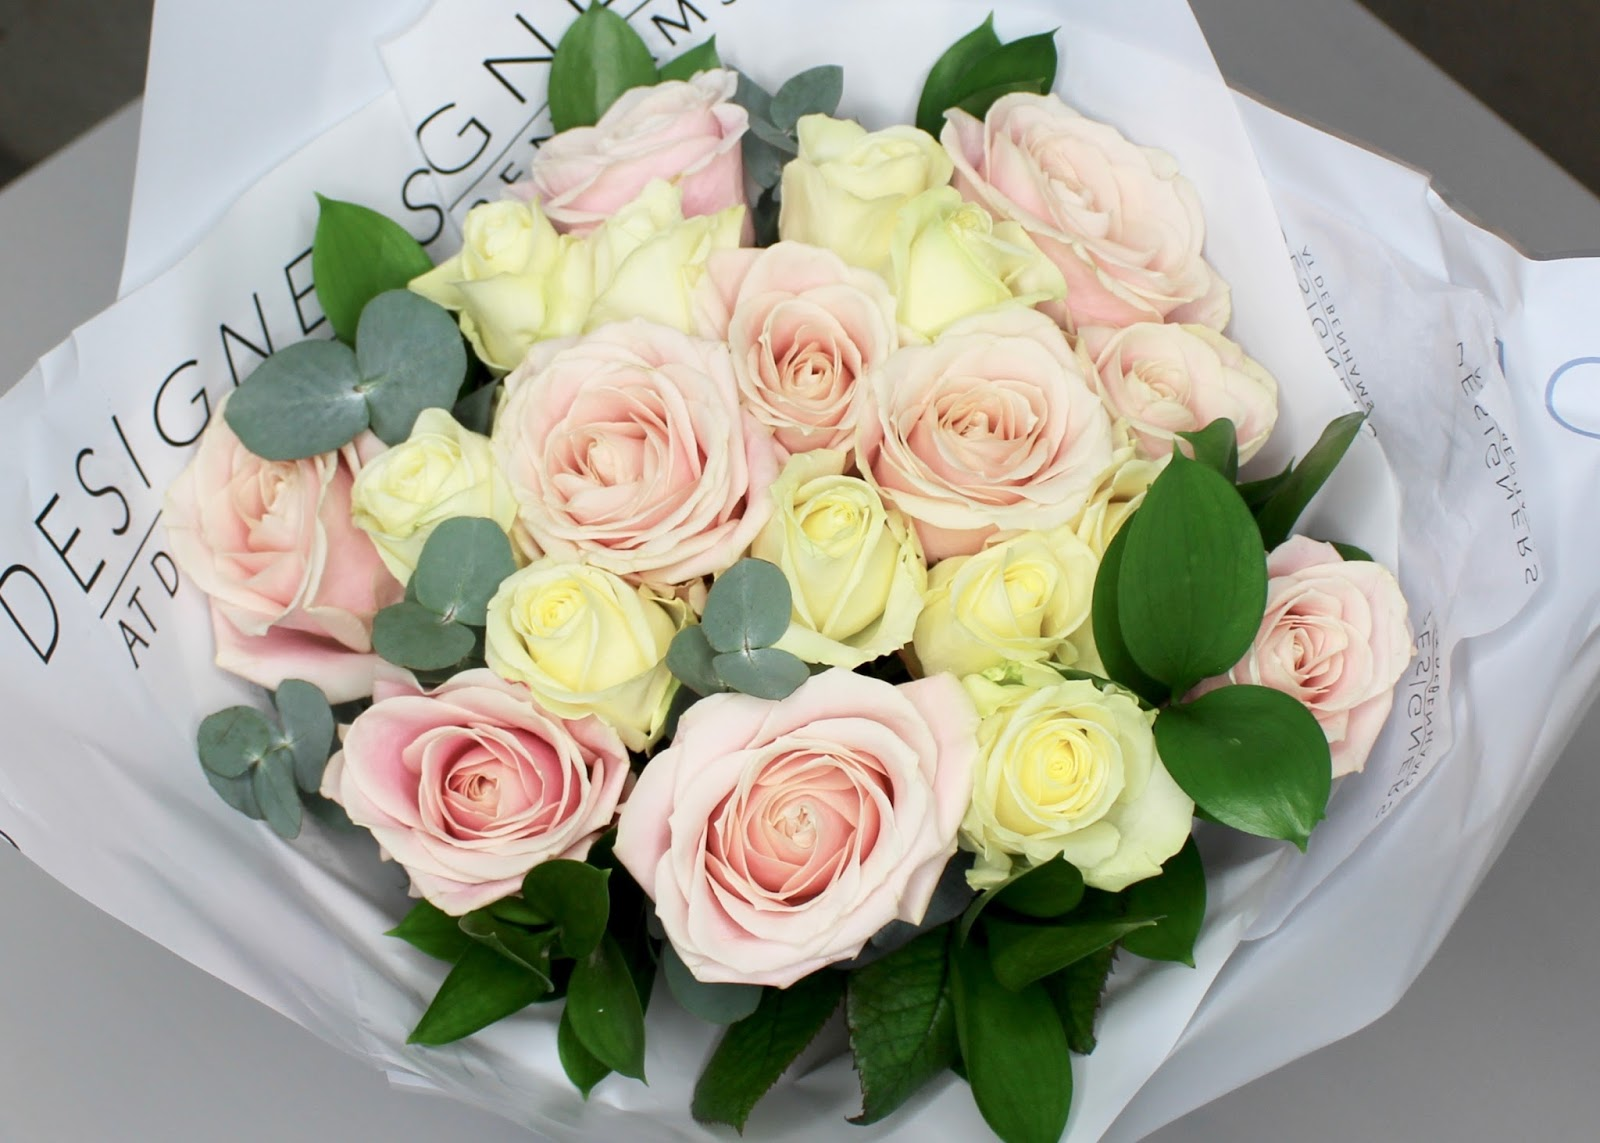 Mother s Day luxury avalanche rose bouquet from Debenhams Flowers and 25%